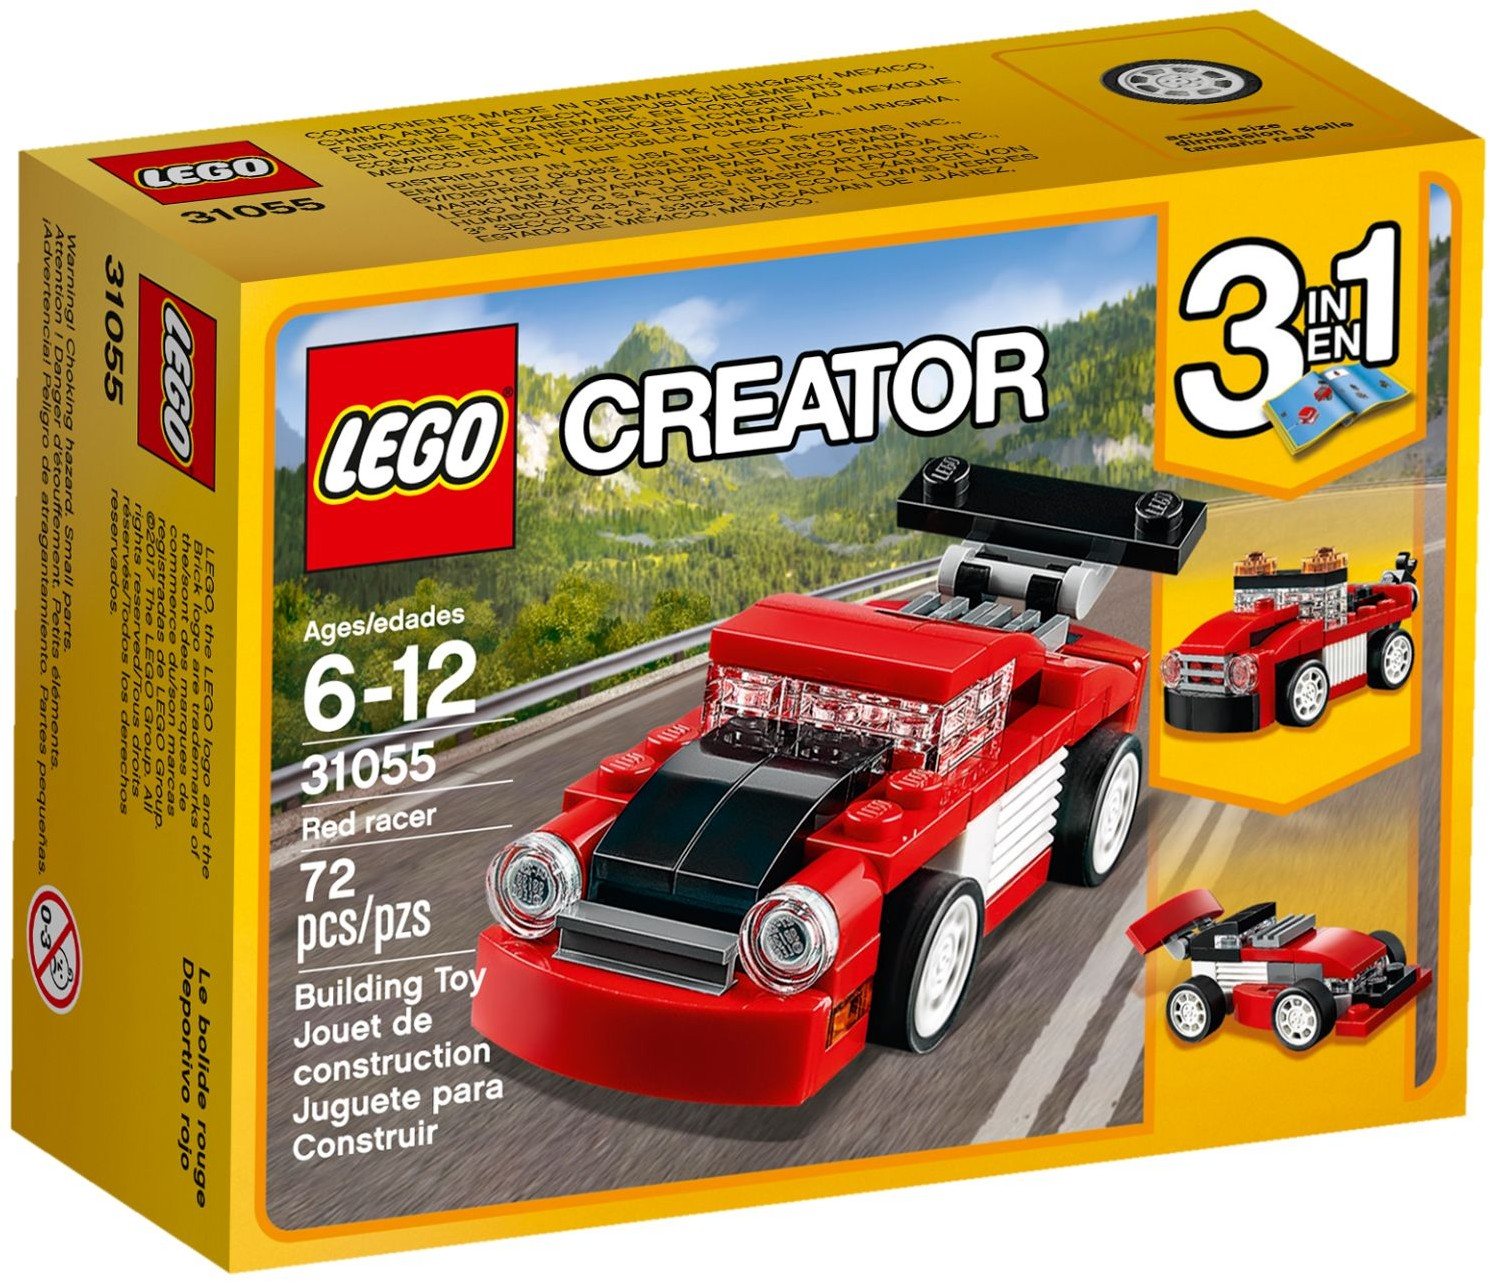 Lego Creator Sets 31055 Red Racer New